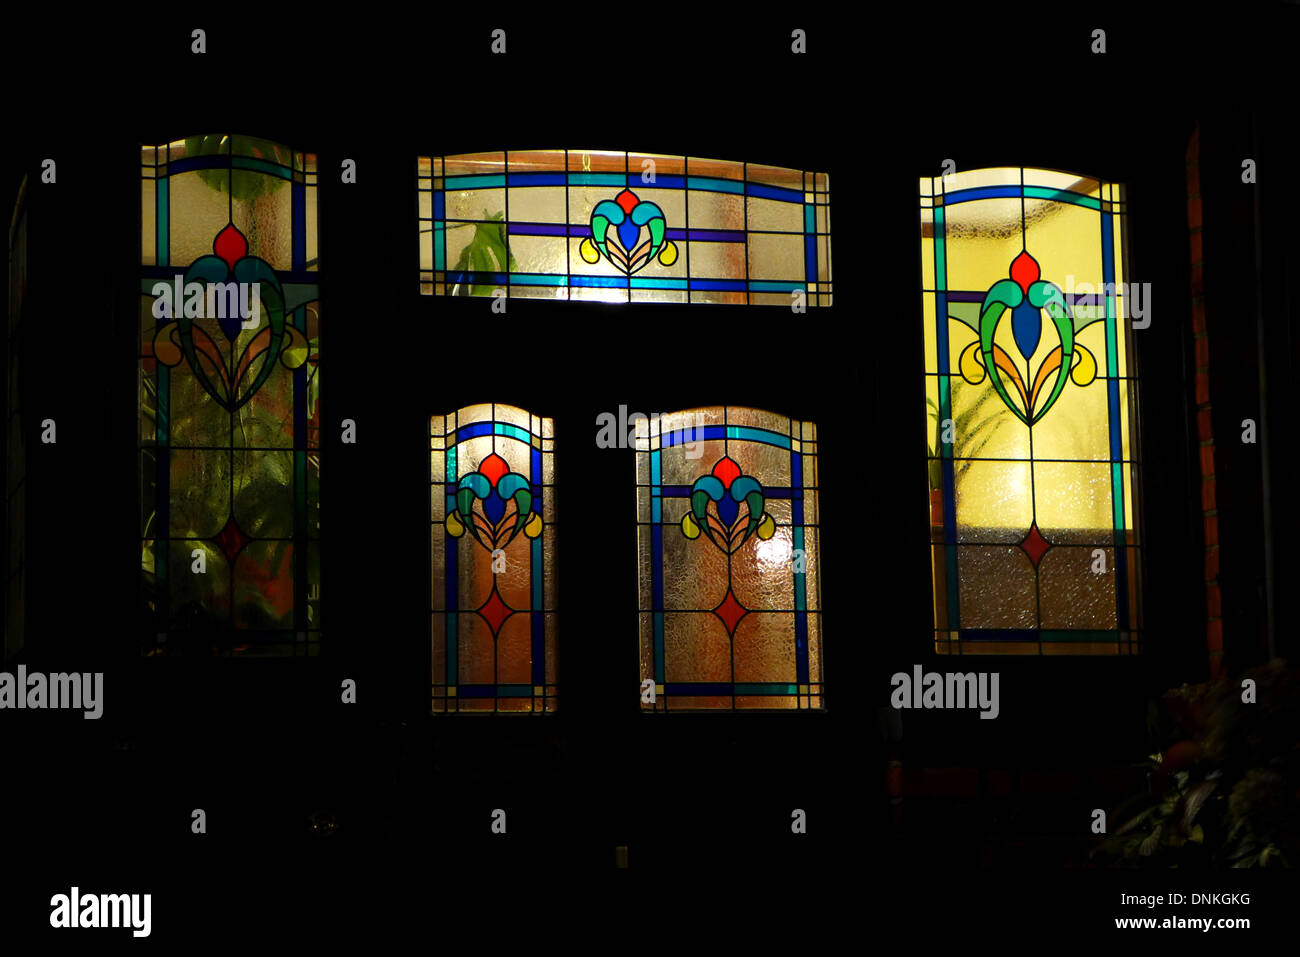 Stained glass windows on the porch of an Edwardian house illuminated from behind by house lights. - Stock Image